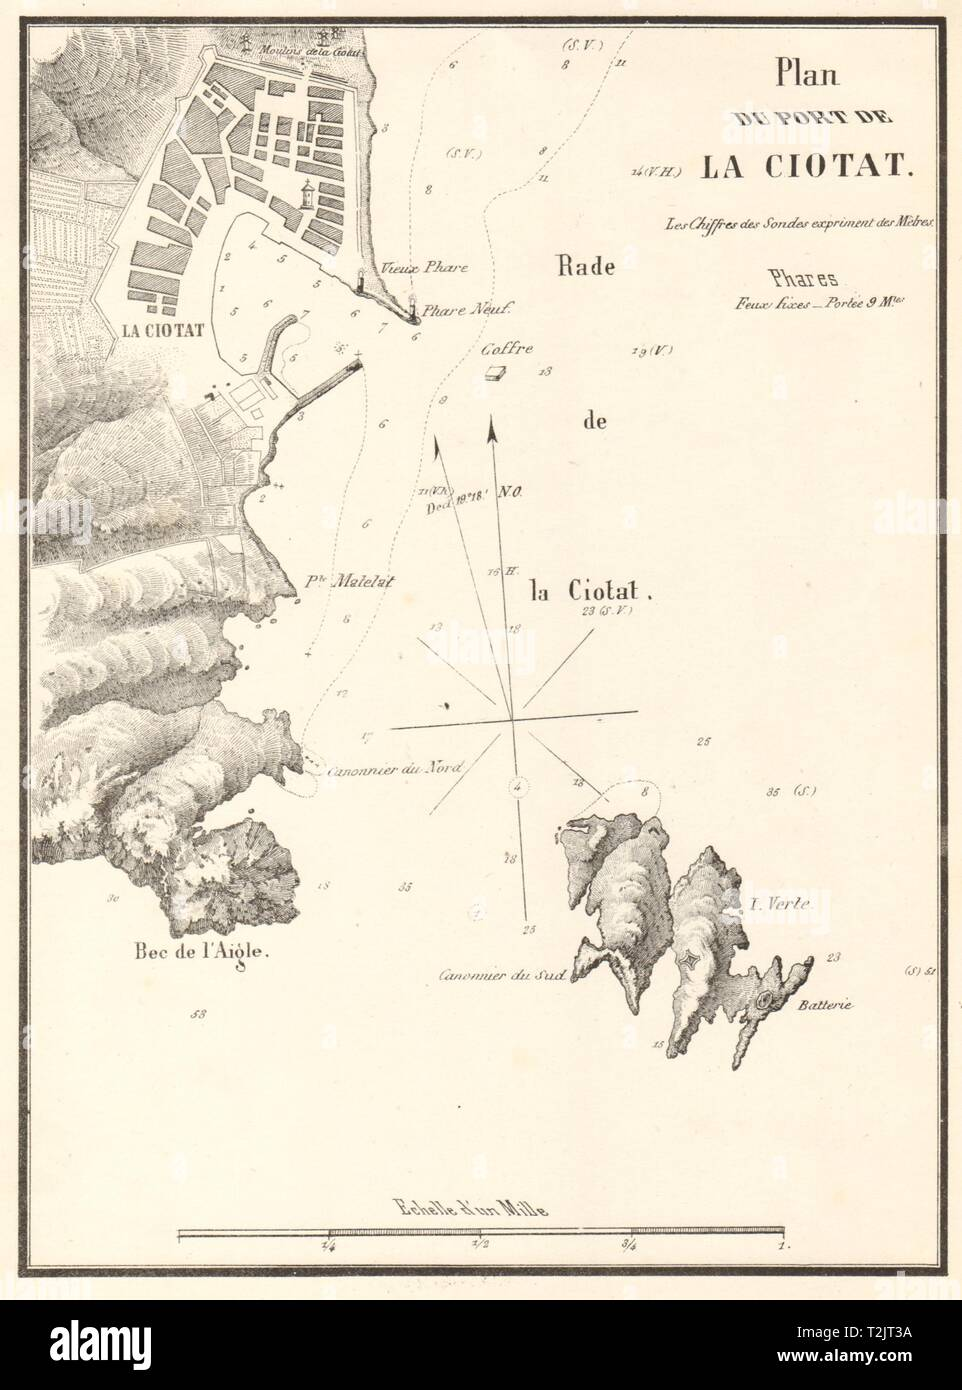 Plan du Port de La Ciotat. Bouches-du-Rhone. GAUTTIER 1851 old antique map - Stock Image